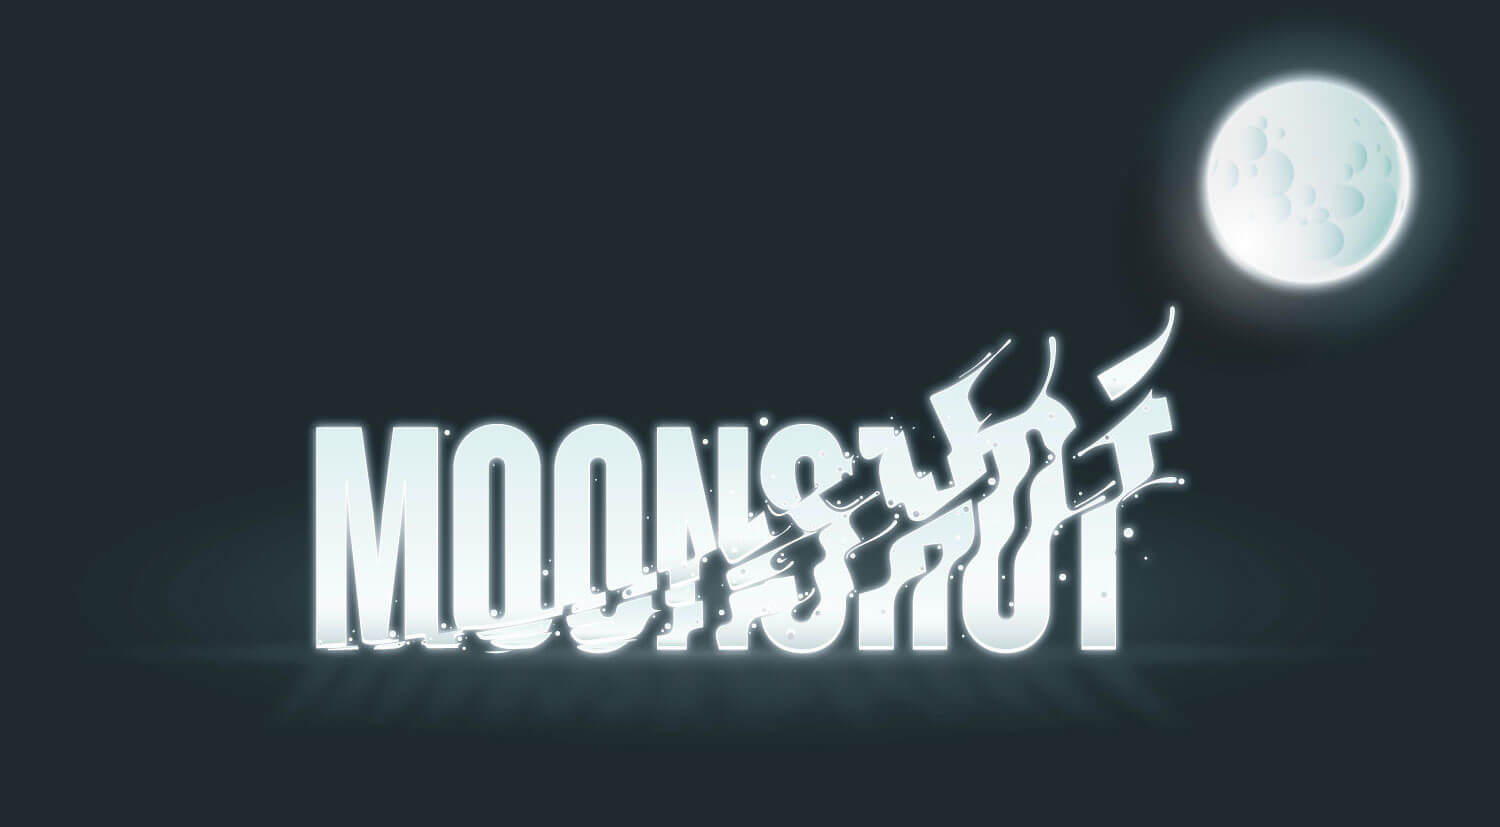 moonshot_walkingfearless